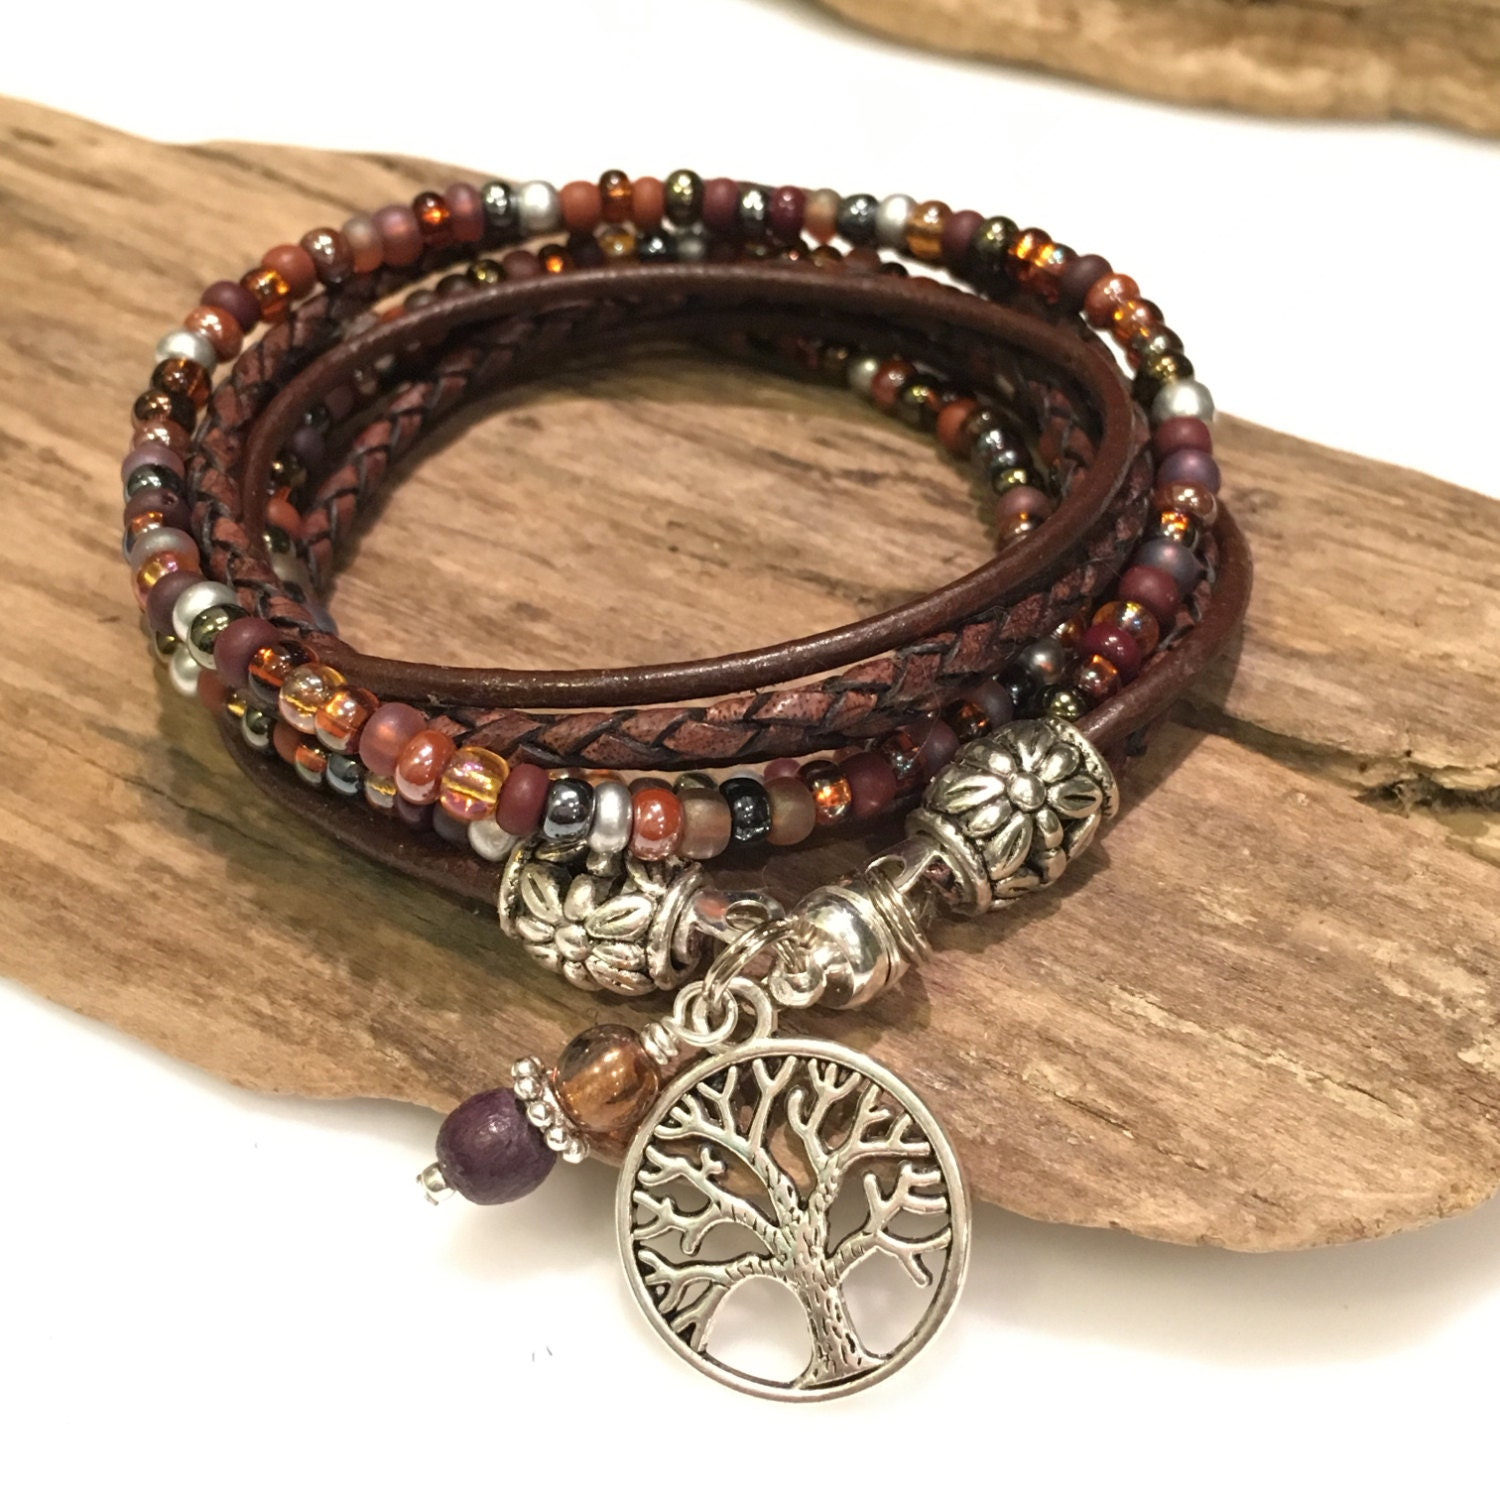 Leather Wrap Charm Bracelet: Boho Wrap Bracelet Leather Bracelet Leather By